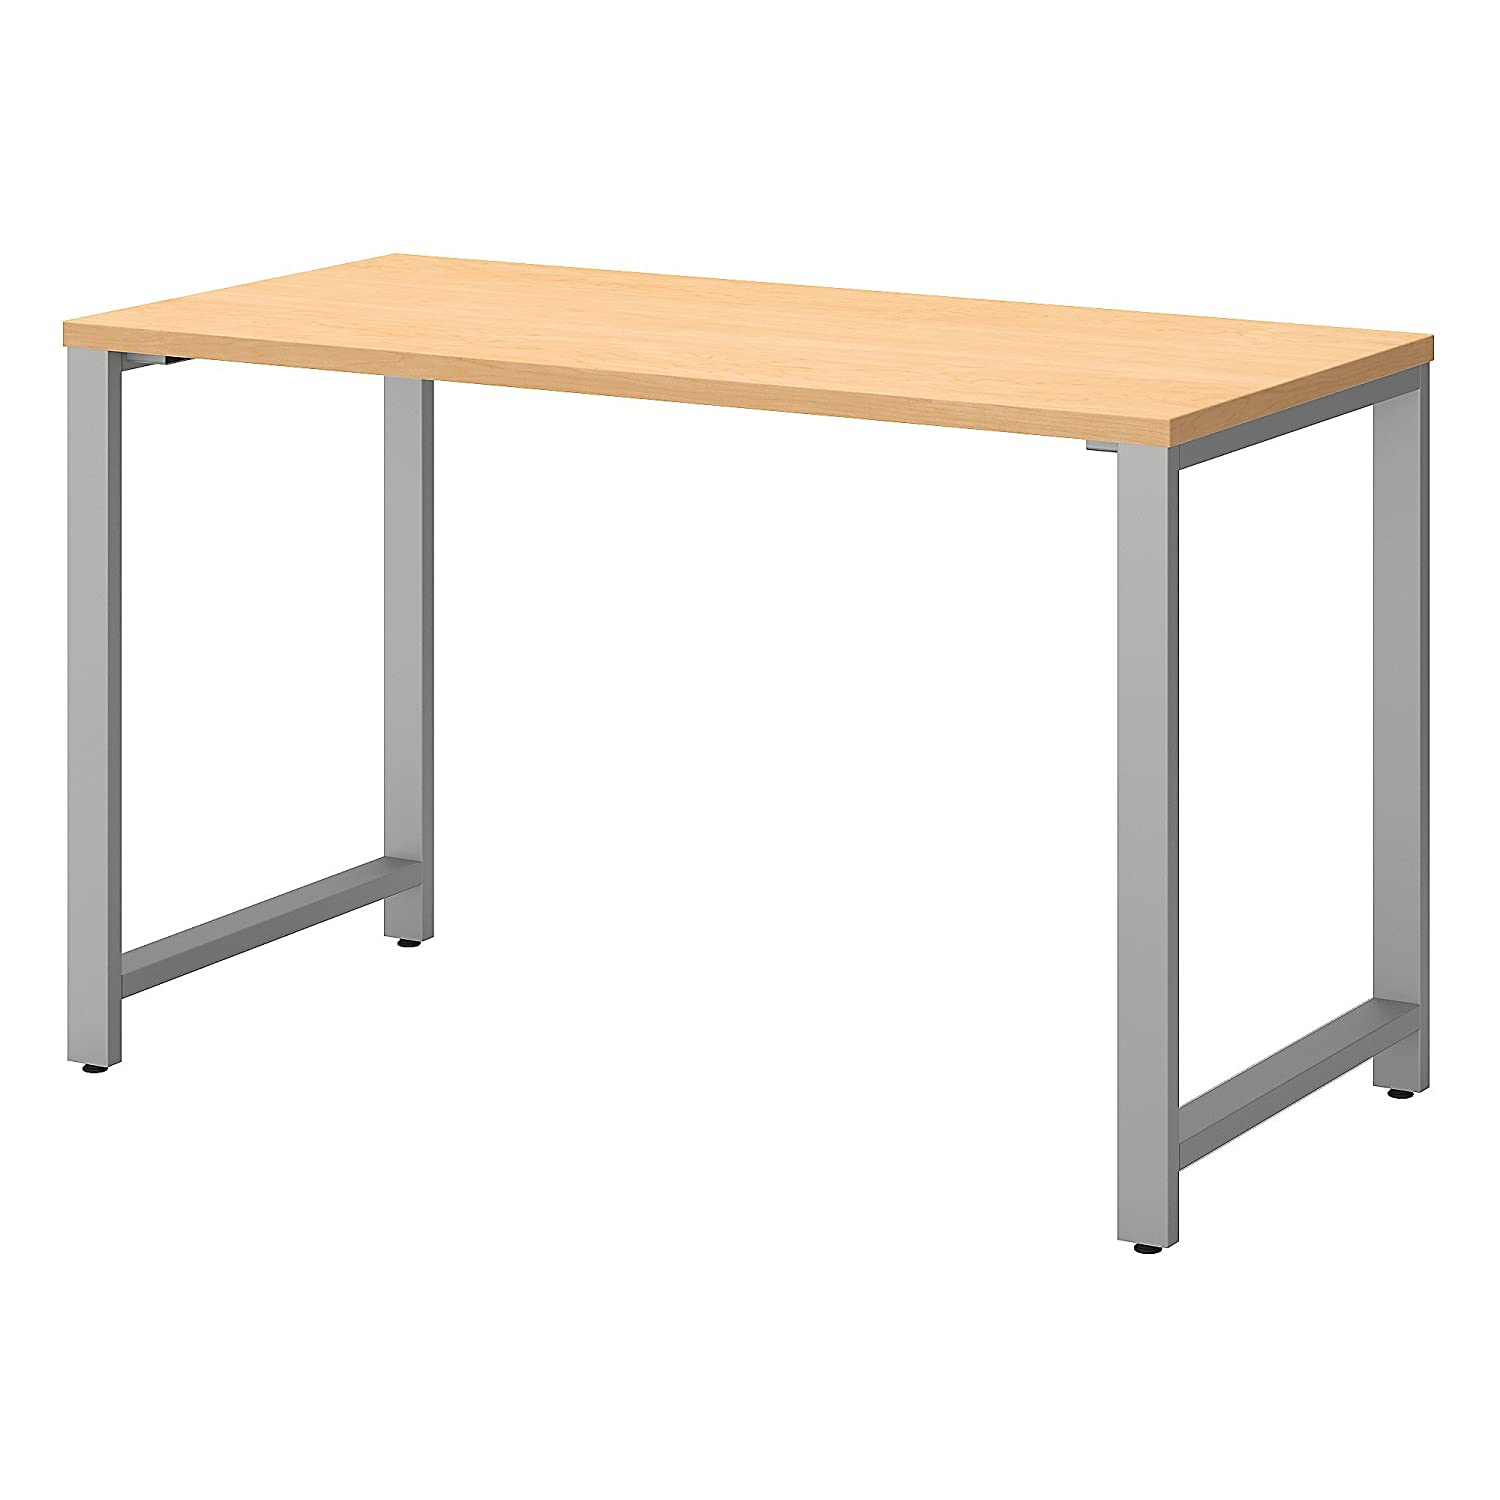 Bush Business Furniture 400 Series 48W x 24D Table Desk in Natural Maple